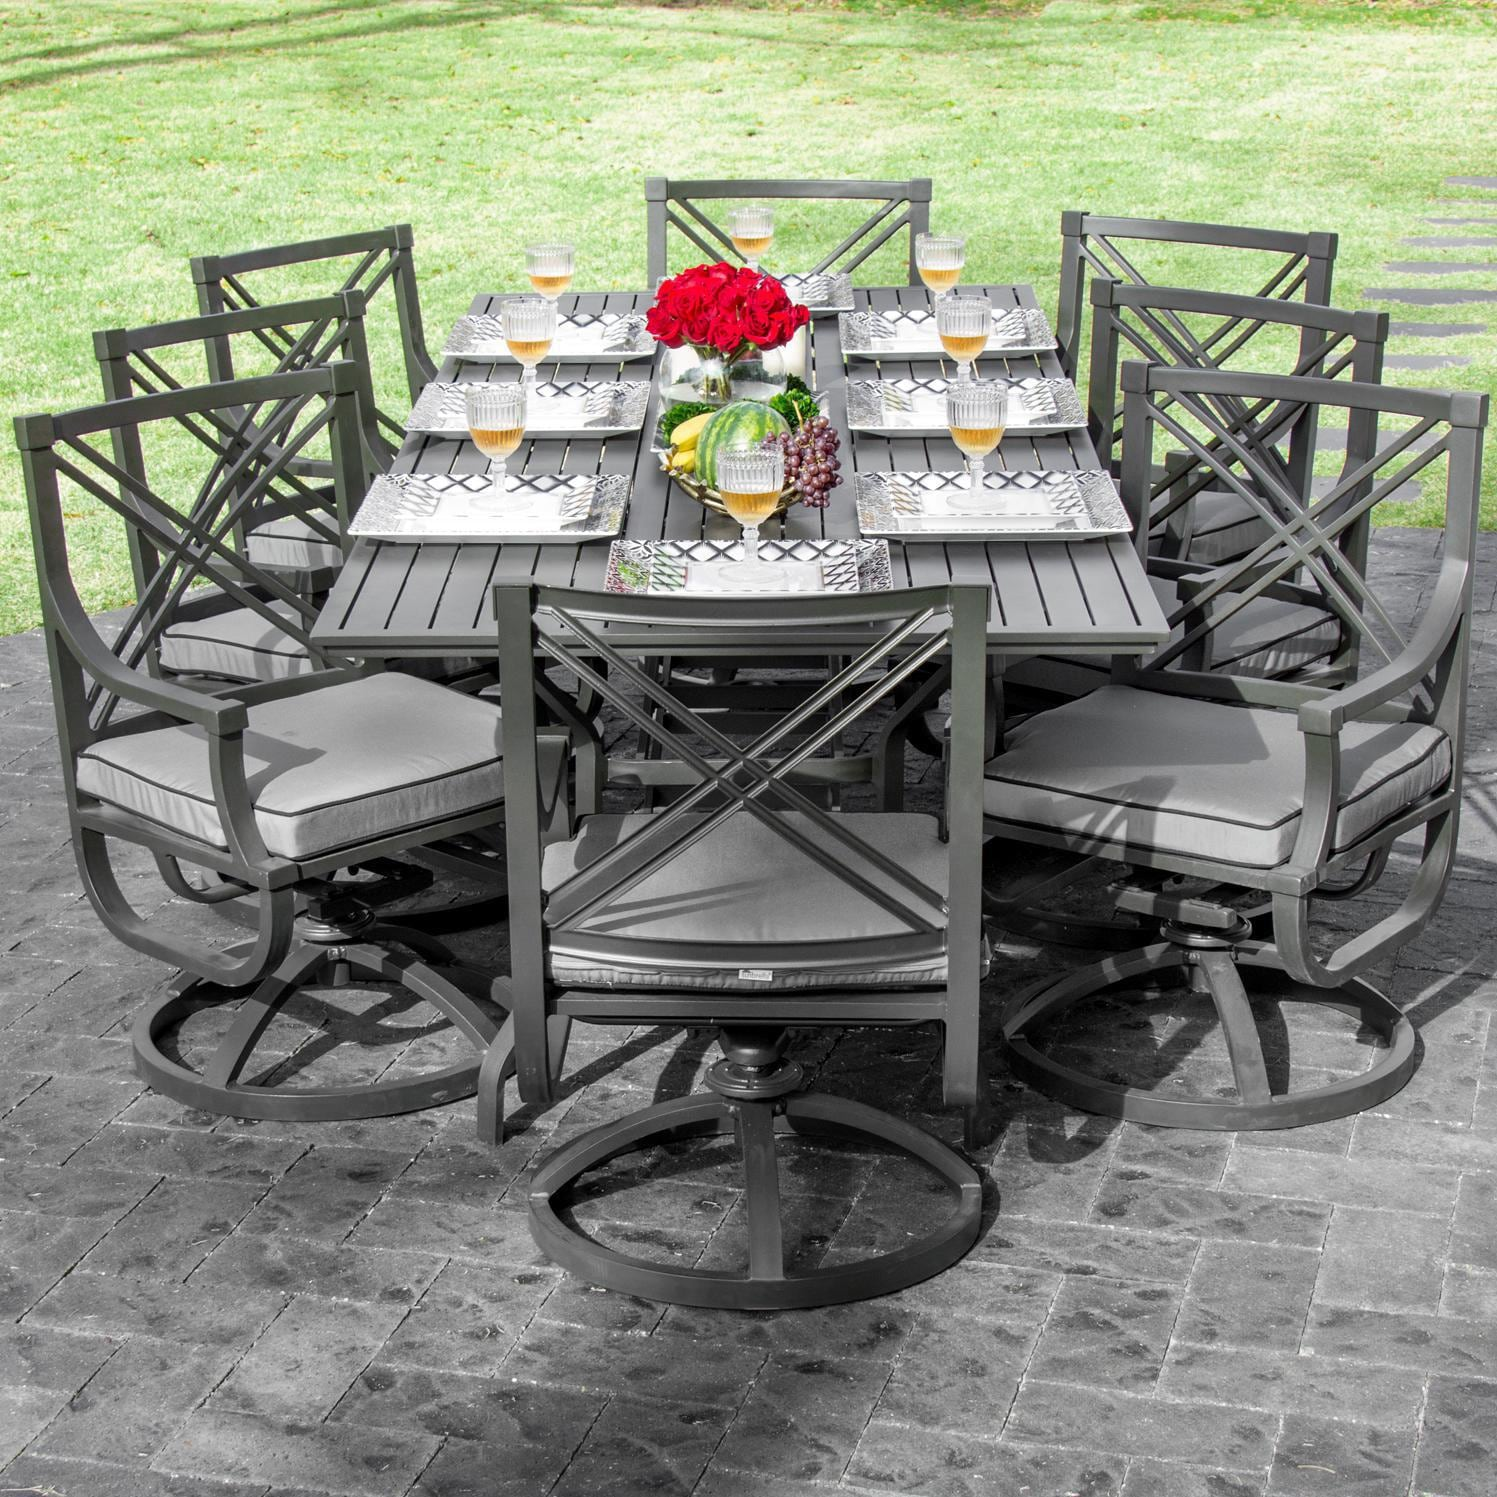 Audubon 8 Person Aluminum Patio Dining Set With Aluminum Table   Alternate  View. Audubon 9 Piece ...